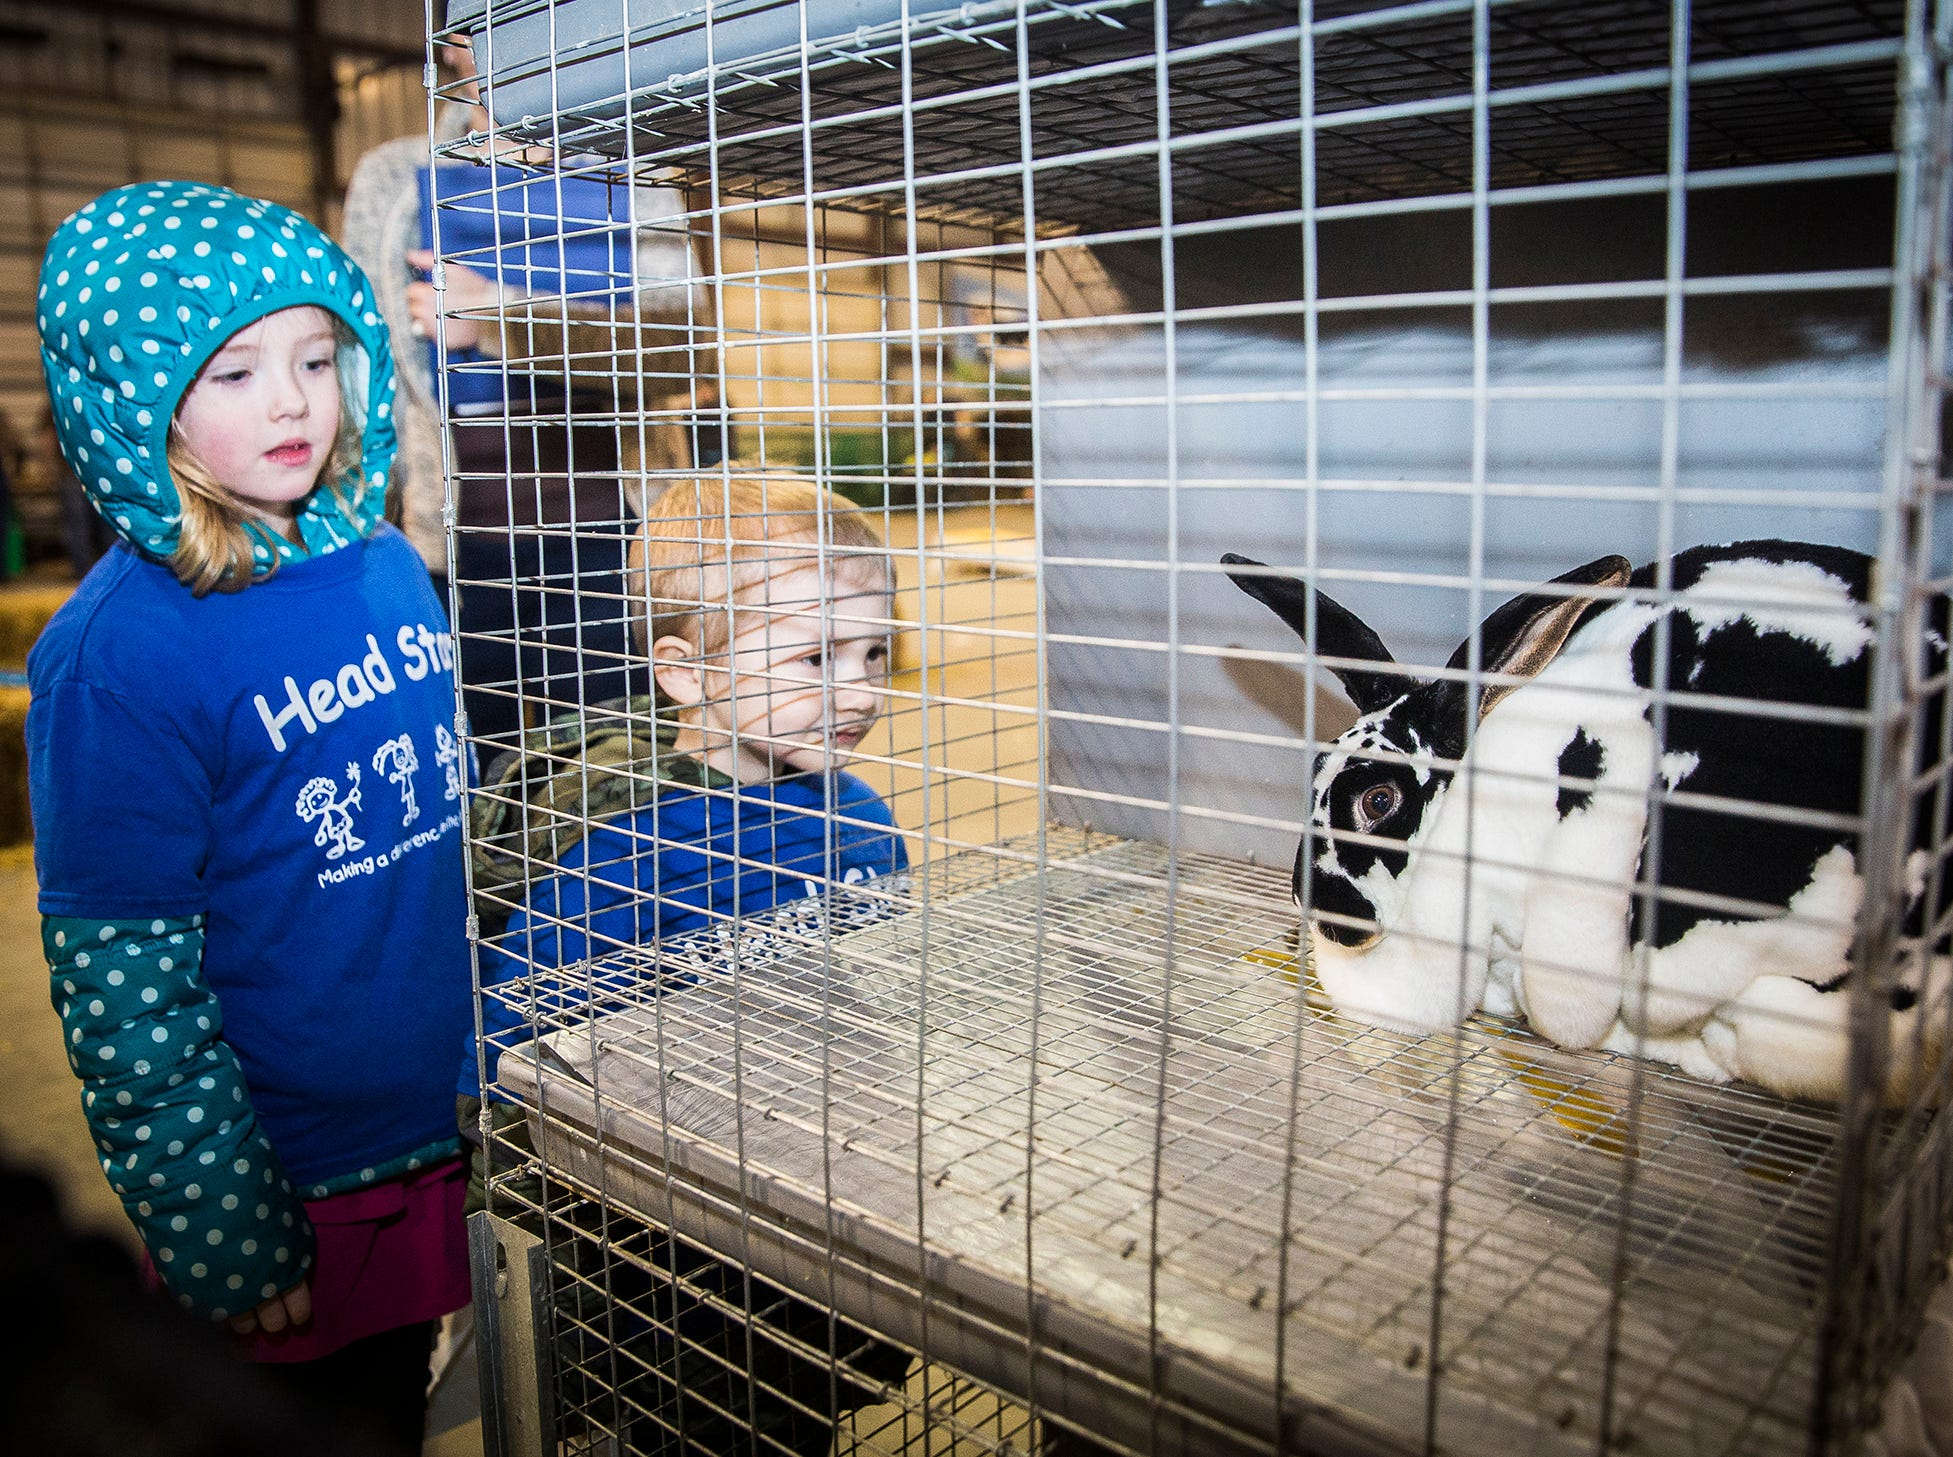 Attendees of the 2019 Delaware County Farm Festival enjoyed sheep shearing and cow milking demonstrations, games and food at the Delaware County Fairgrounds Tuesday. The event continues until 8 p.m. Tuesday and from 8:30 a.m. to 8 p.m. Wednesday.